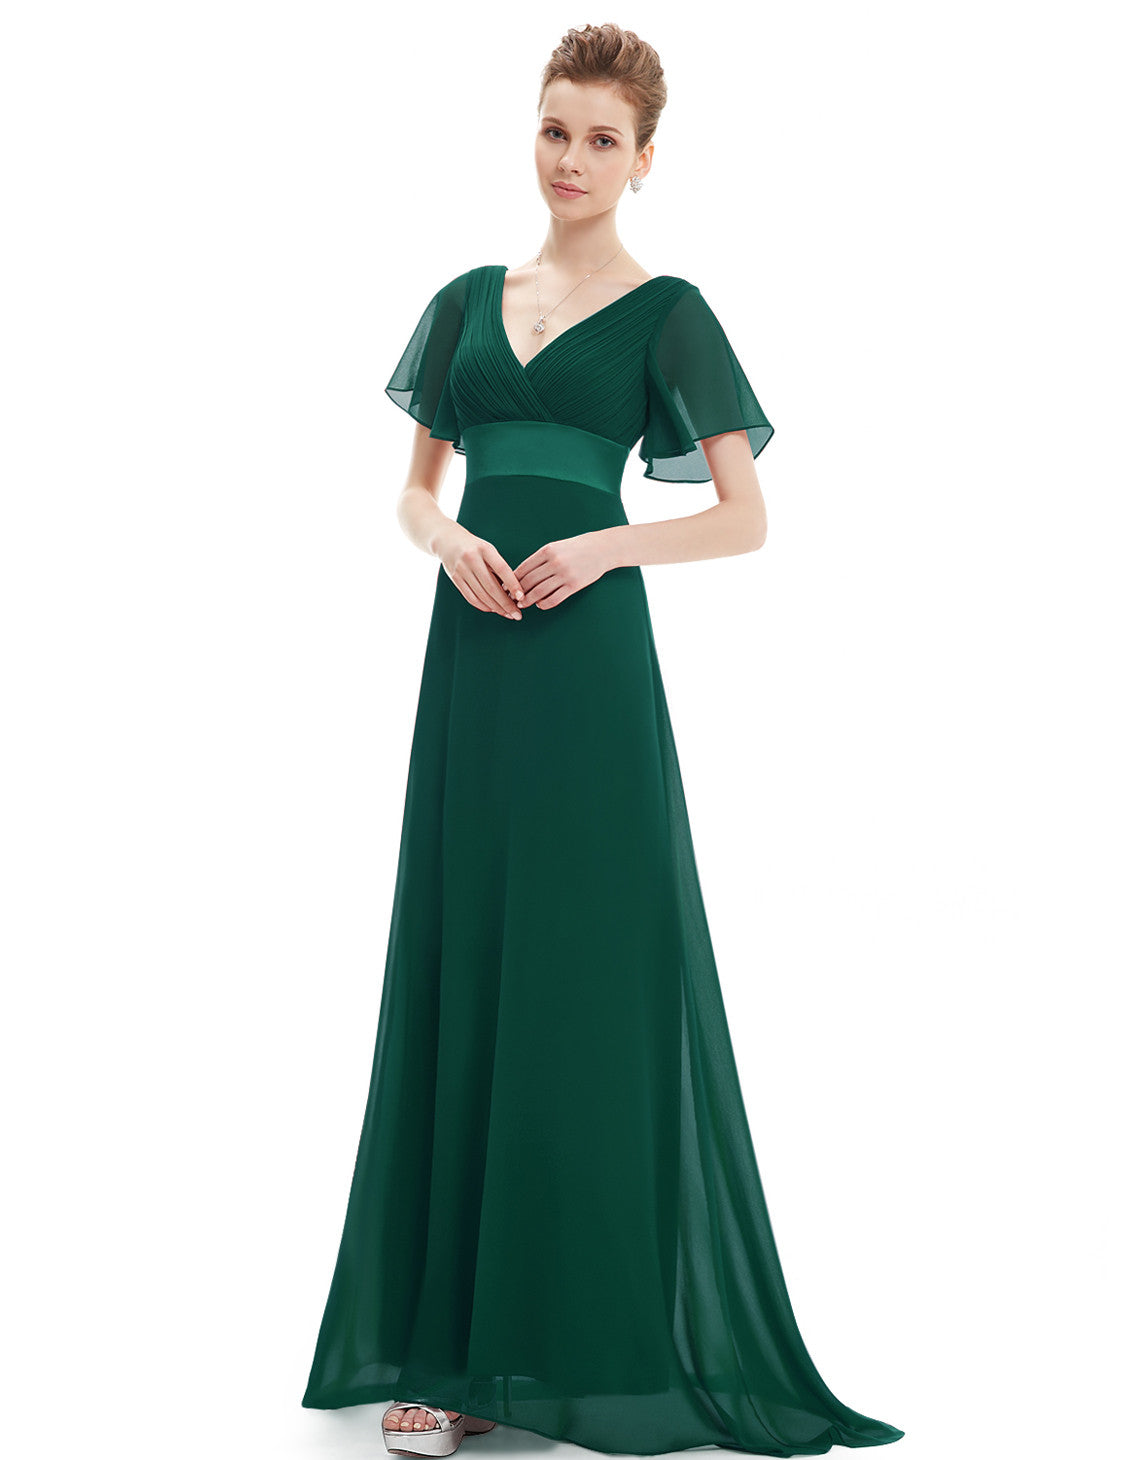 Obeige Glamorous Green Double V-Neck Ruffles Padded Evening Dress